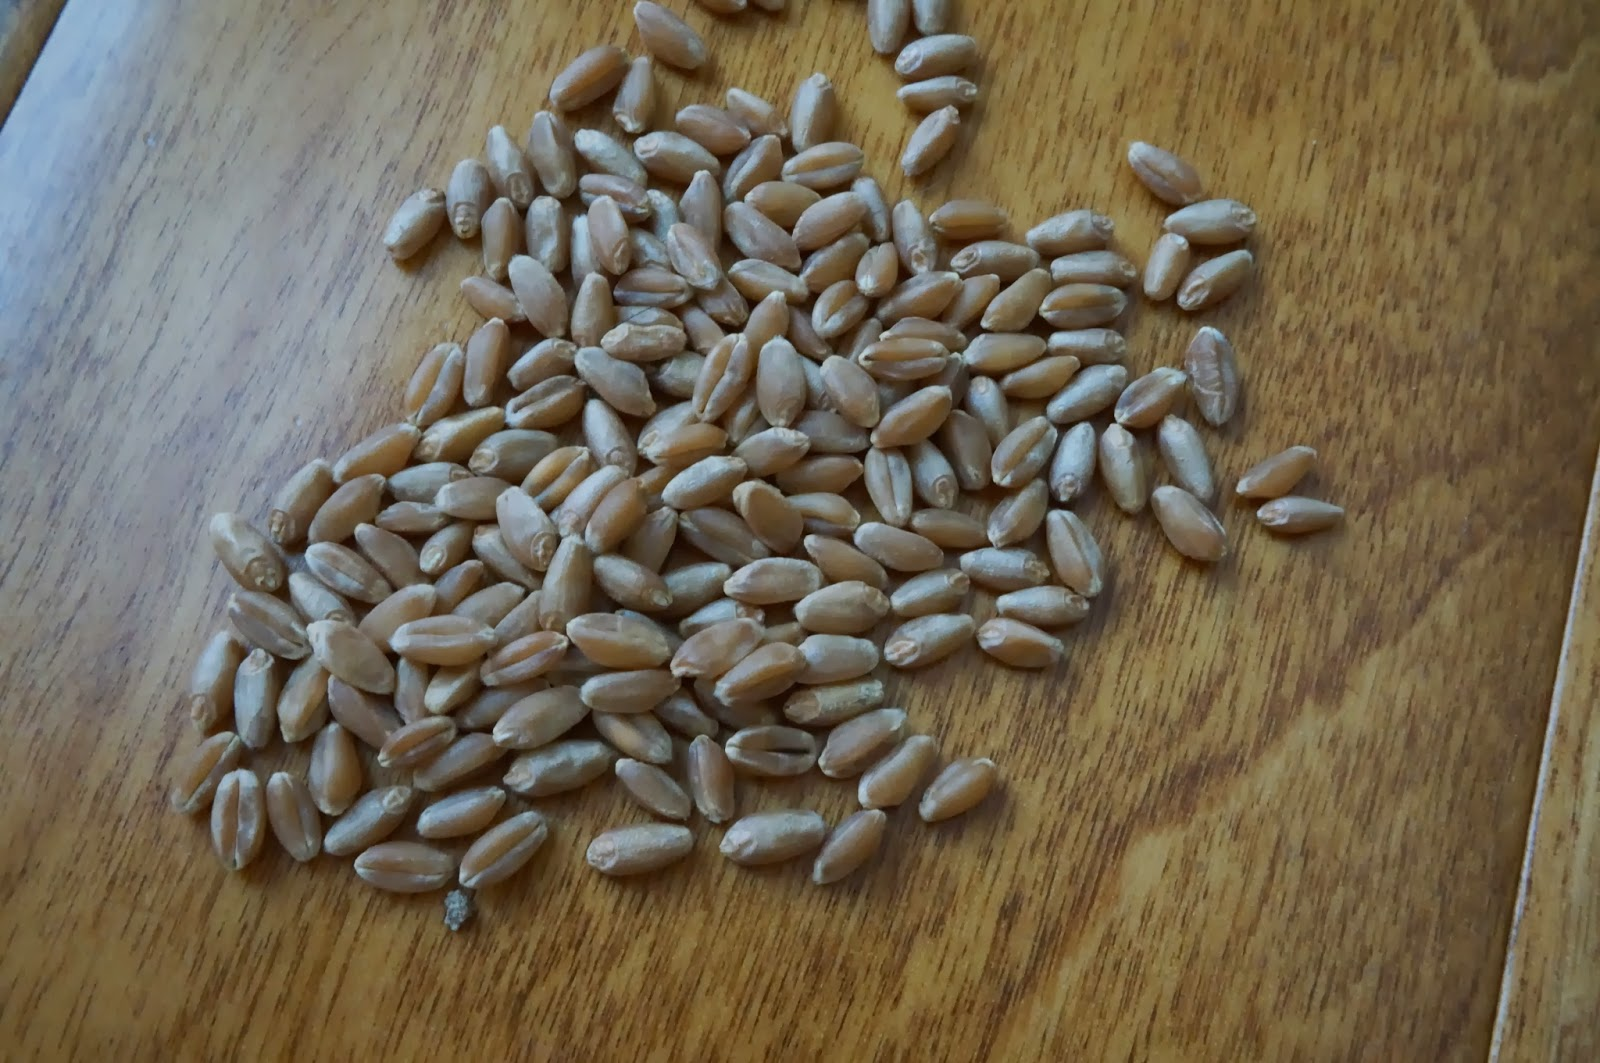 wheat seeds, whole grain wheat